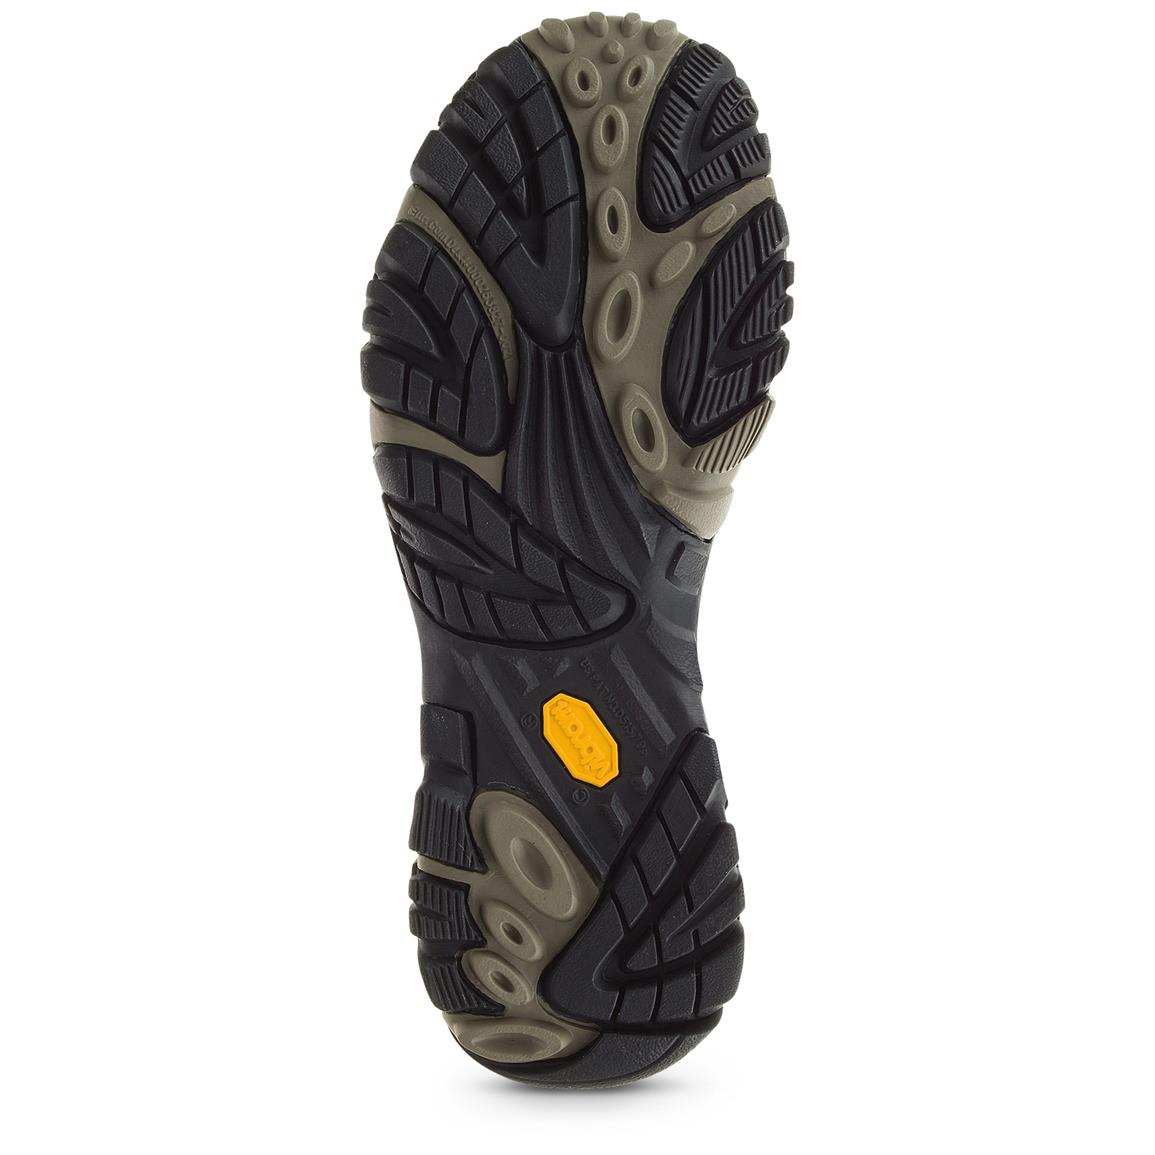 Vibram TC5+ outsole with 5mm lugs excels on both wet and dry surfaces in even the most extreme temperatures